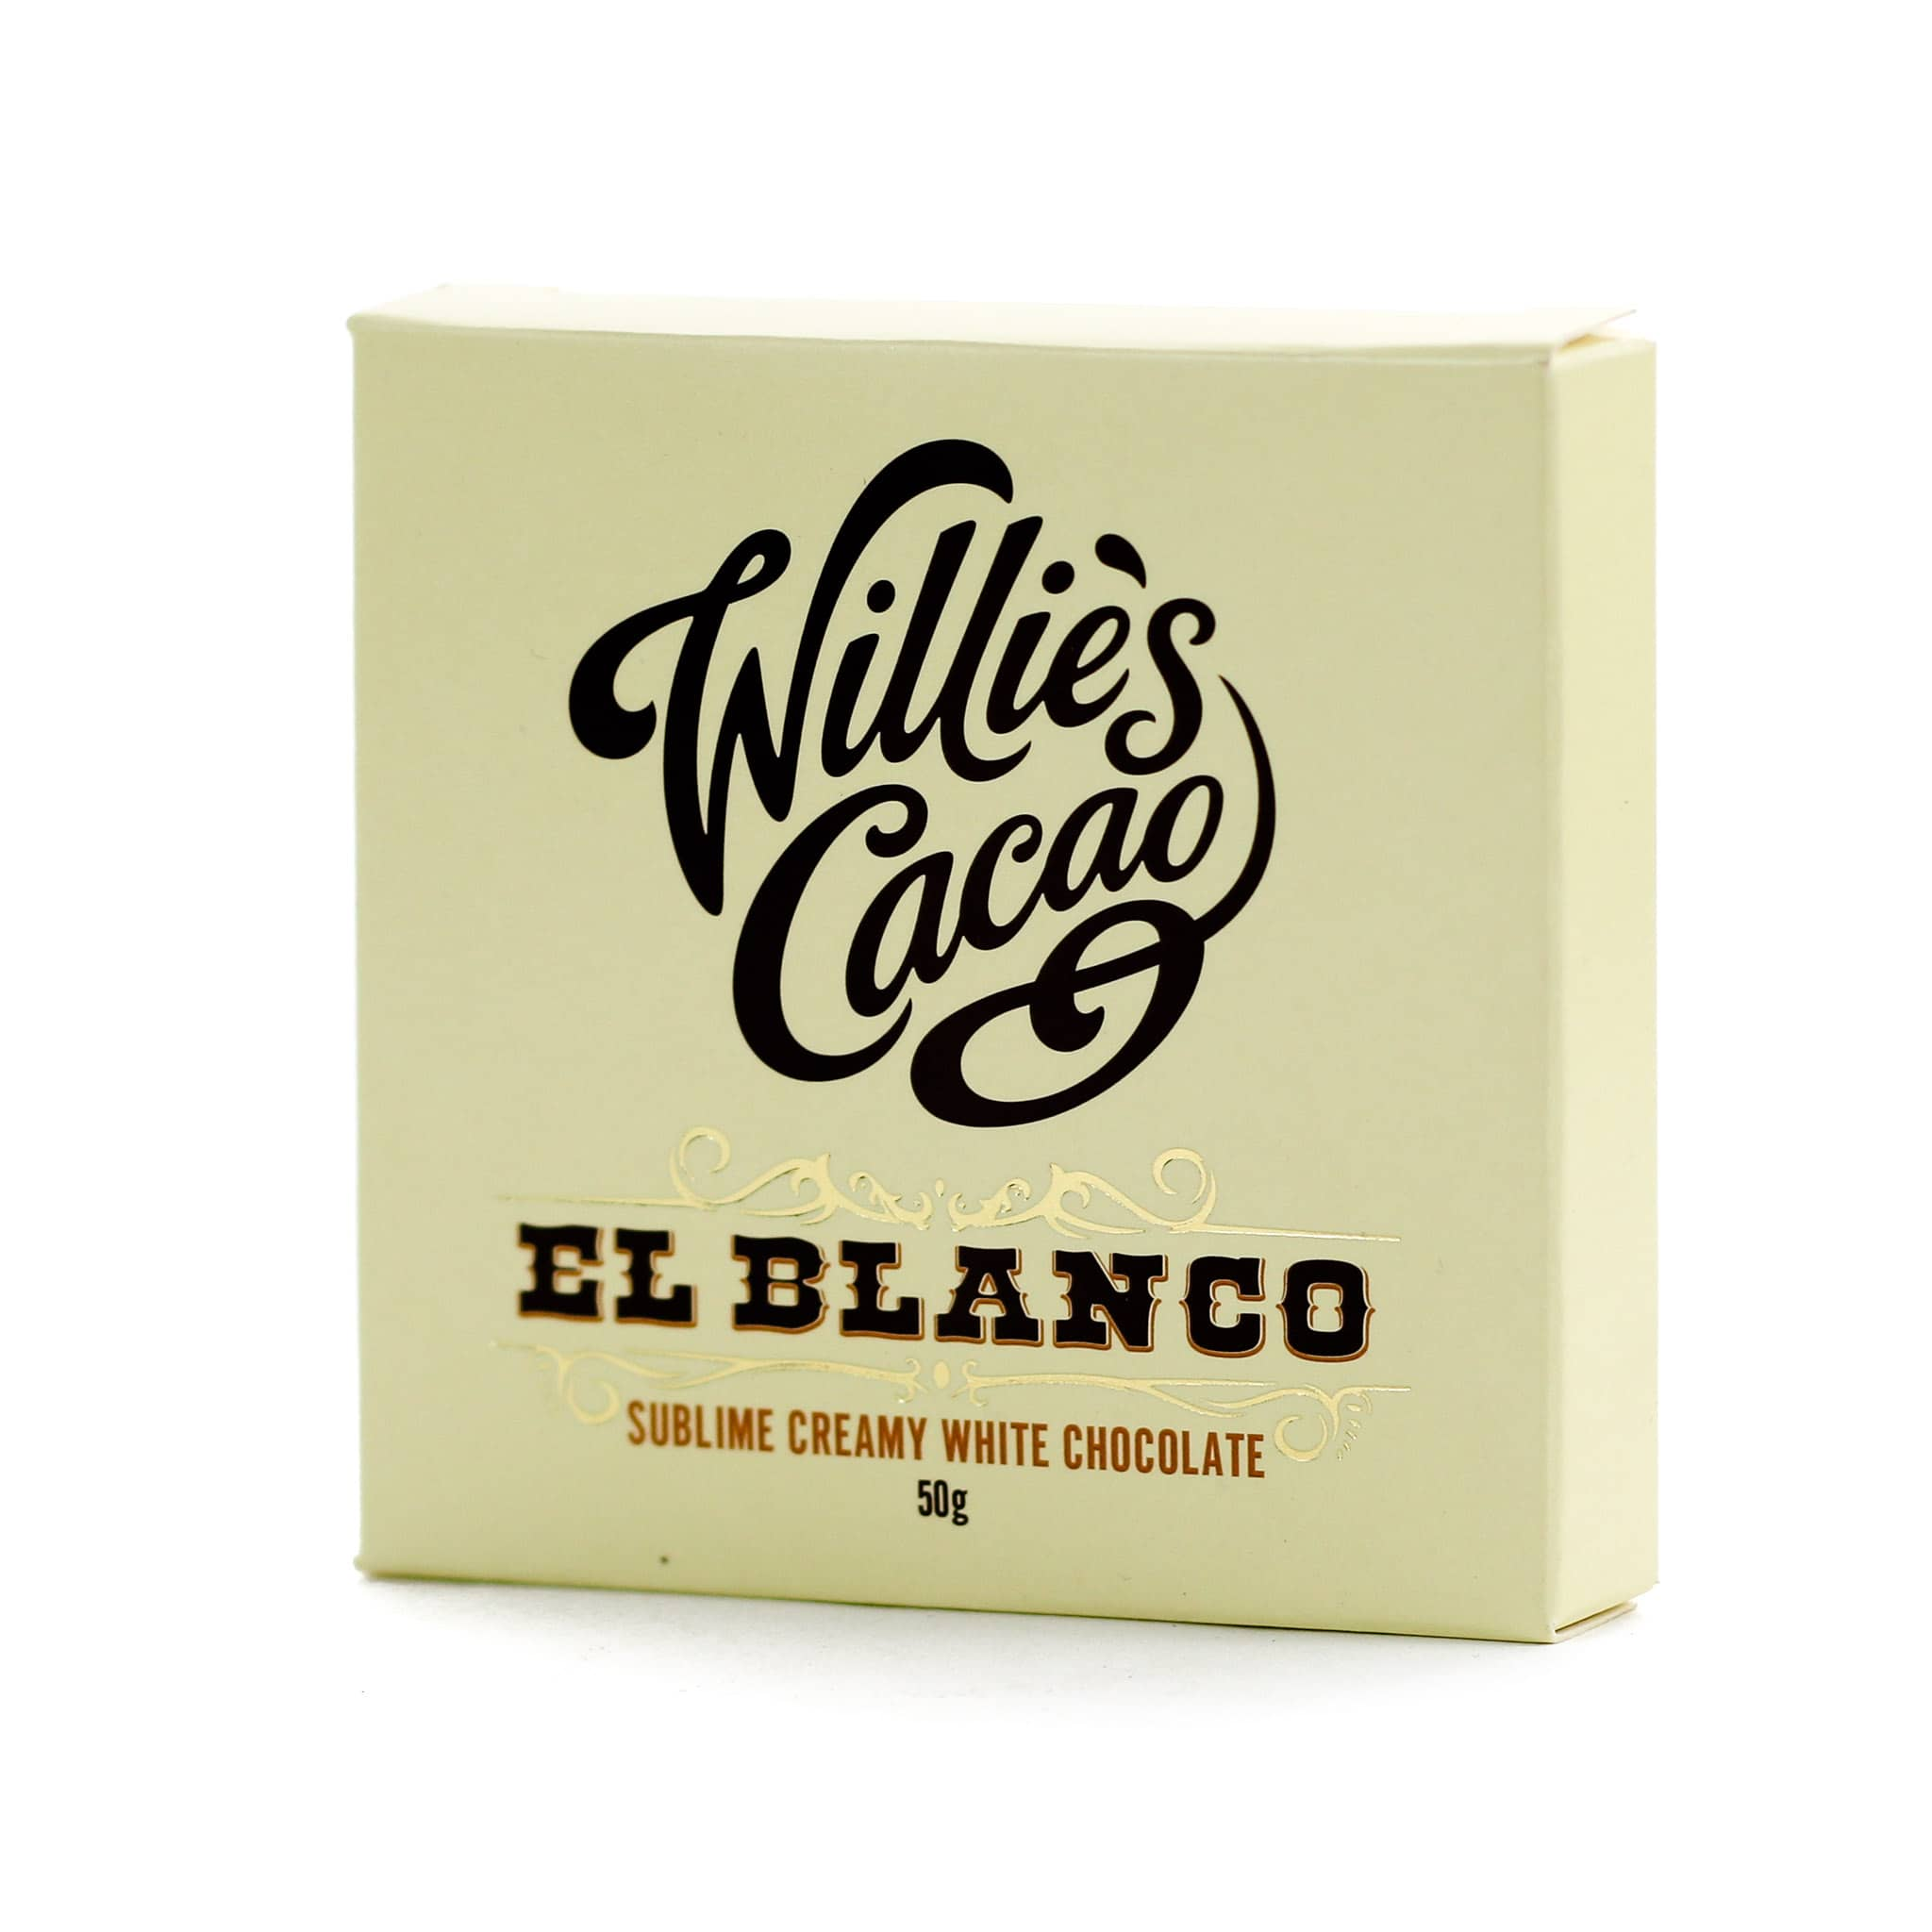 Willie's Cacao El Blanco Pure White Chocolate 50g